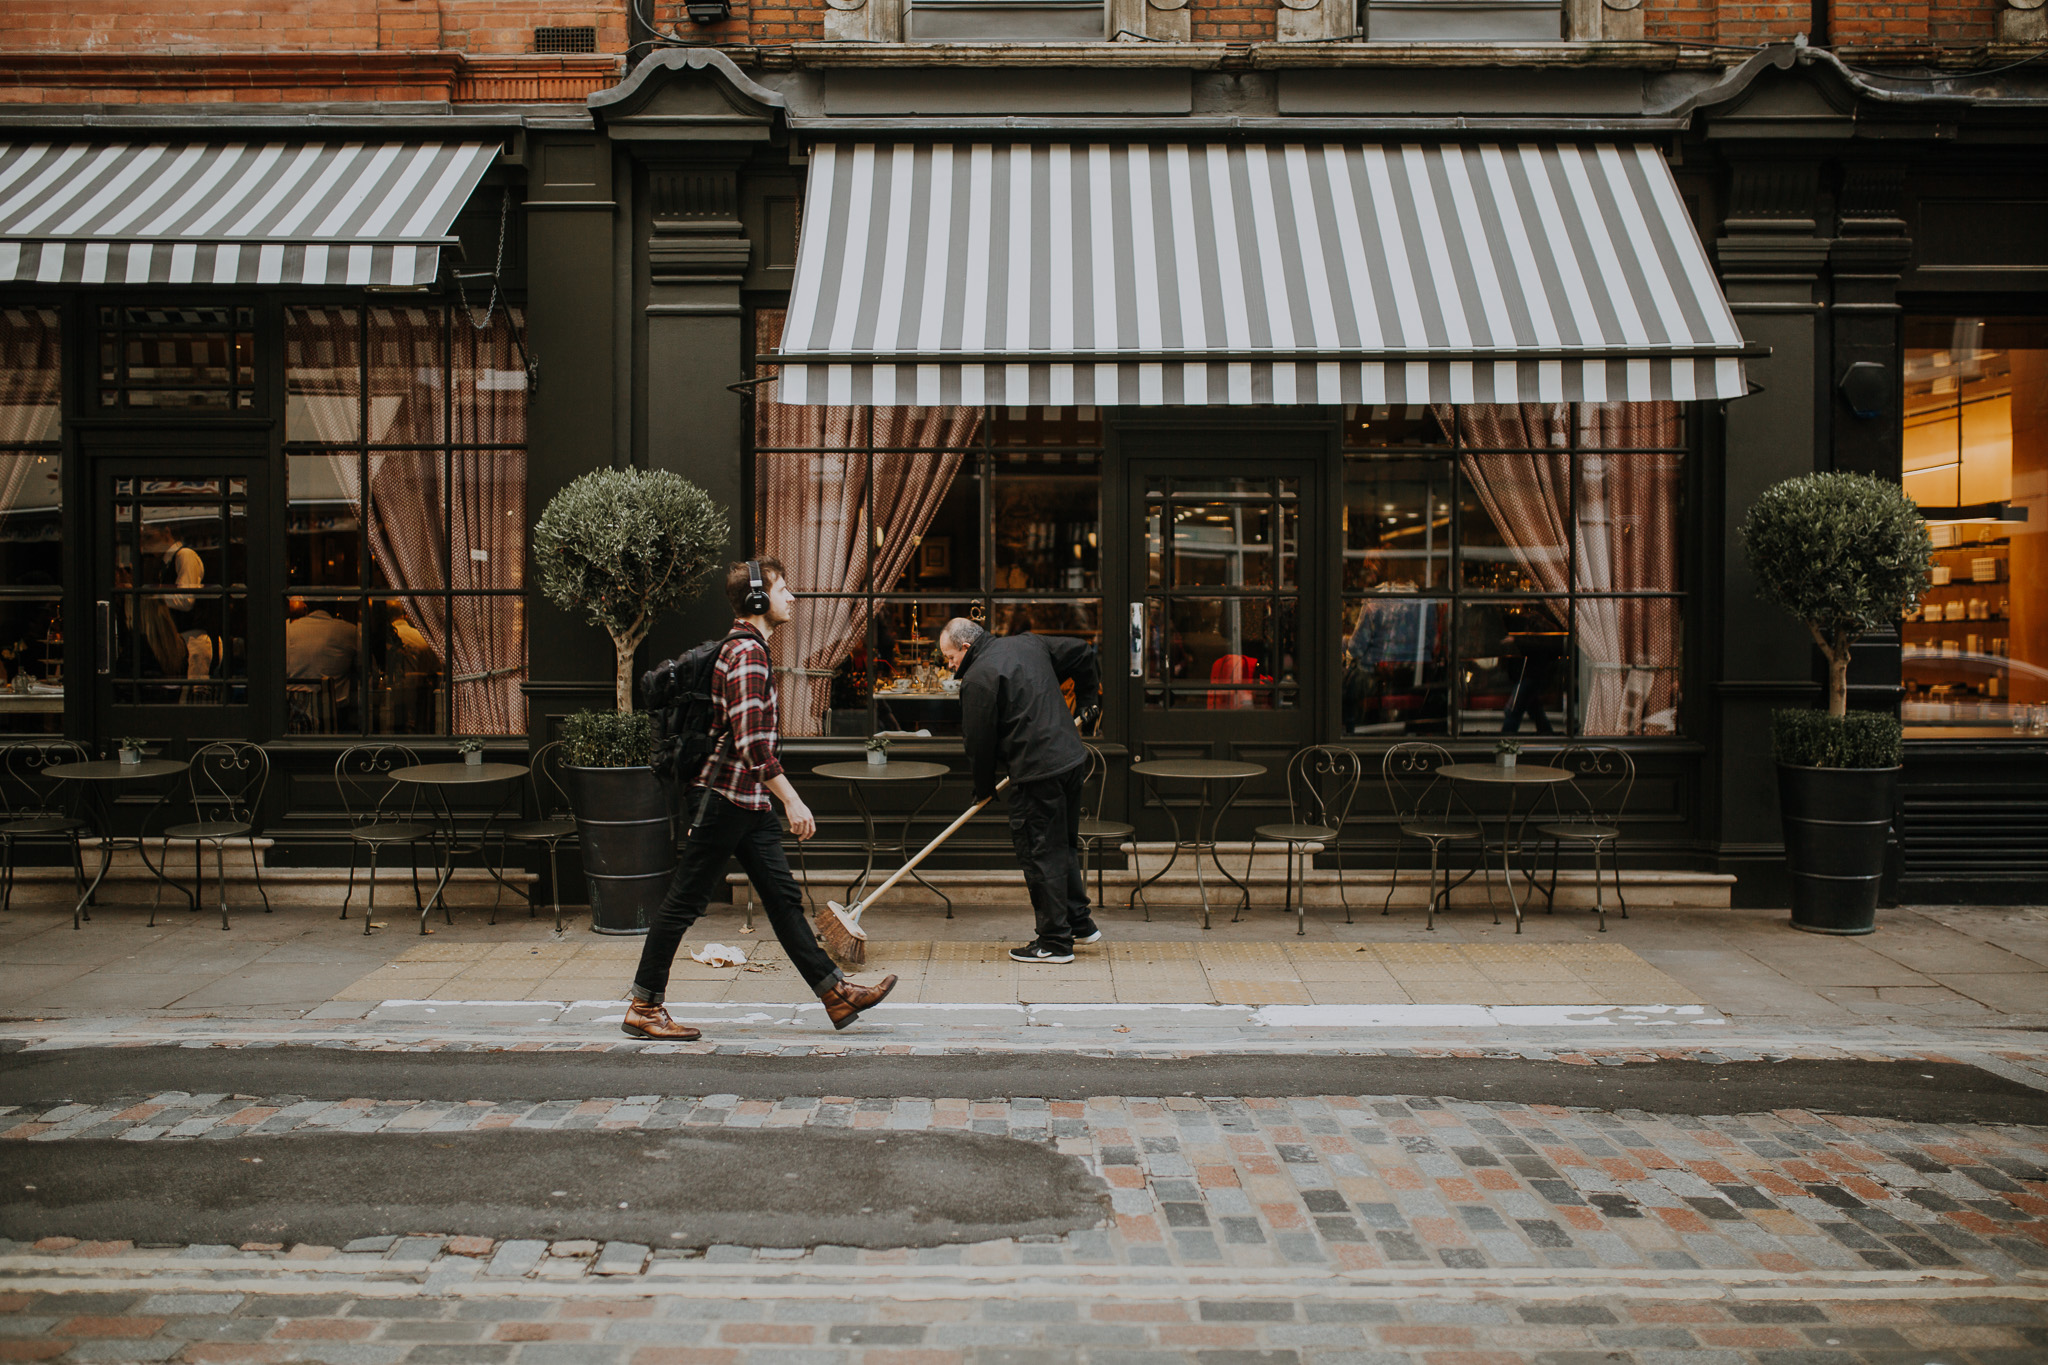 A man walks through seven dials